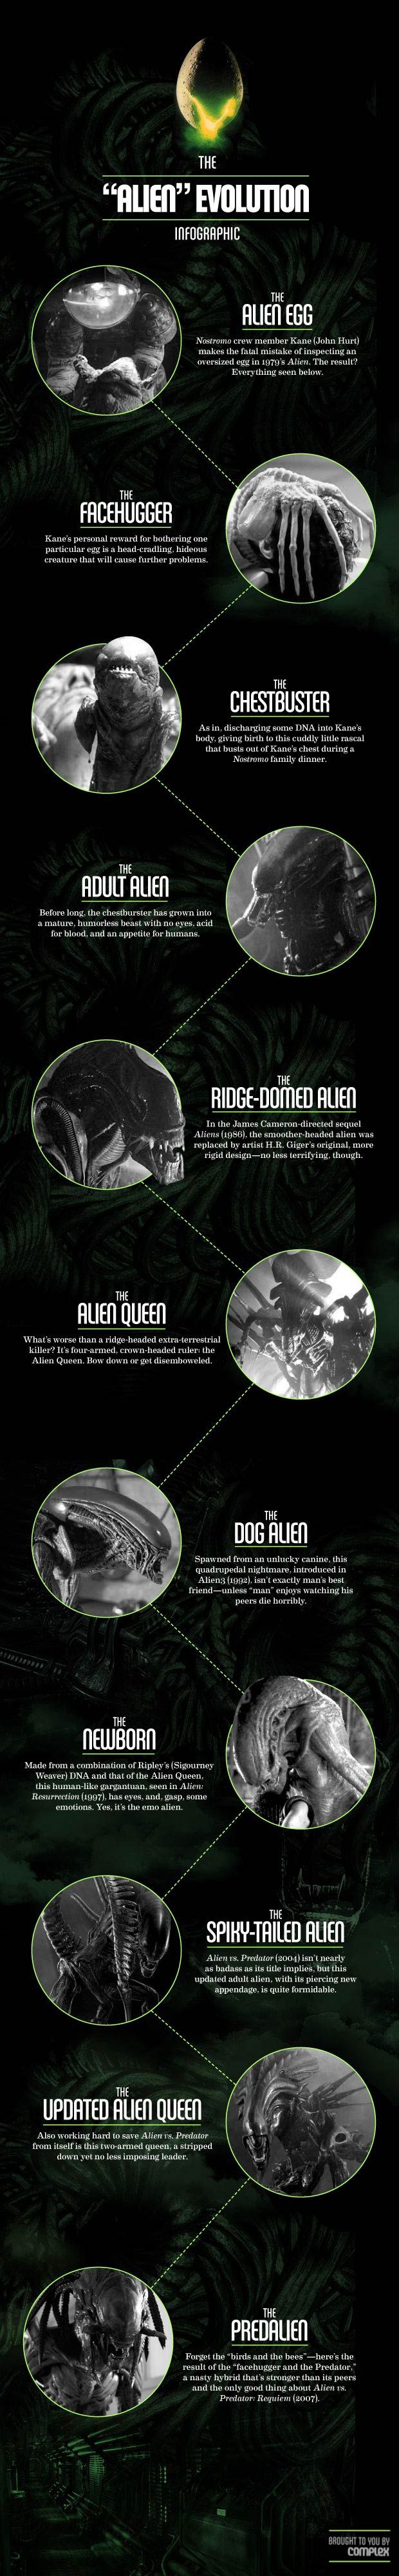 "The ""Alien"" Evolution Infographic #saturdayknowledge #movies #scifi"